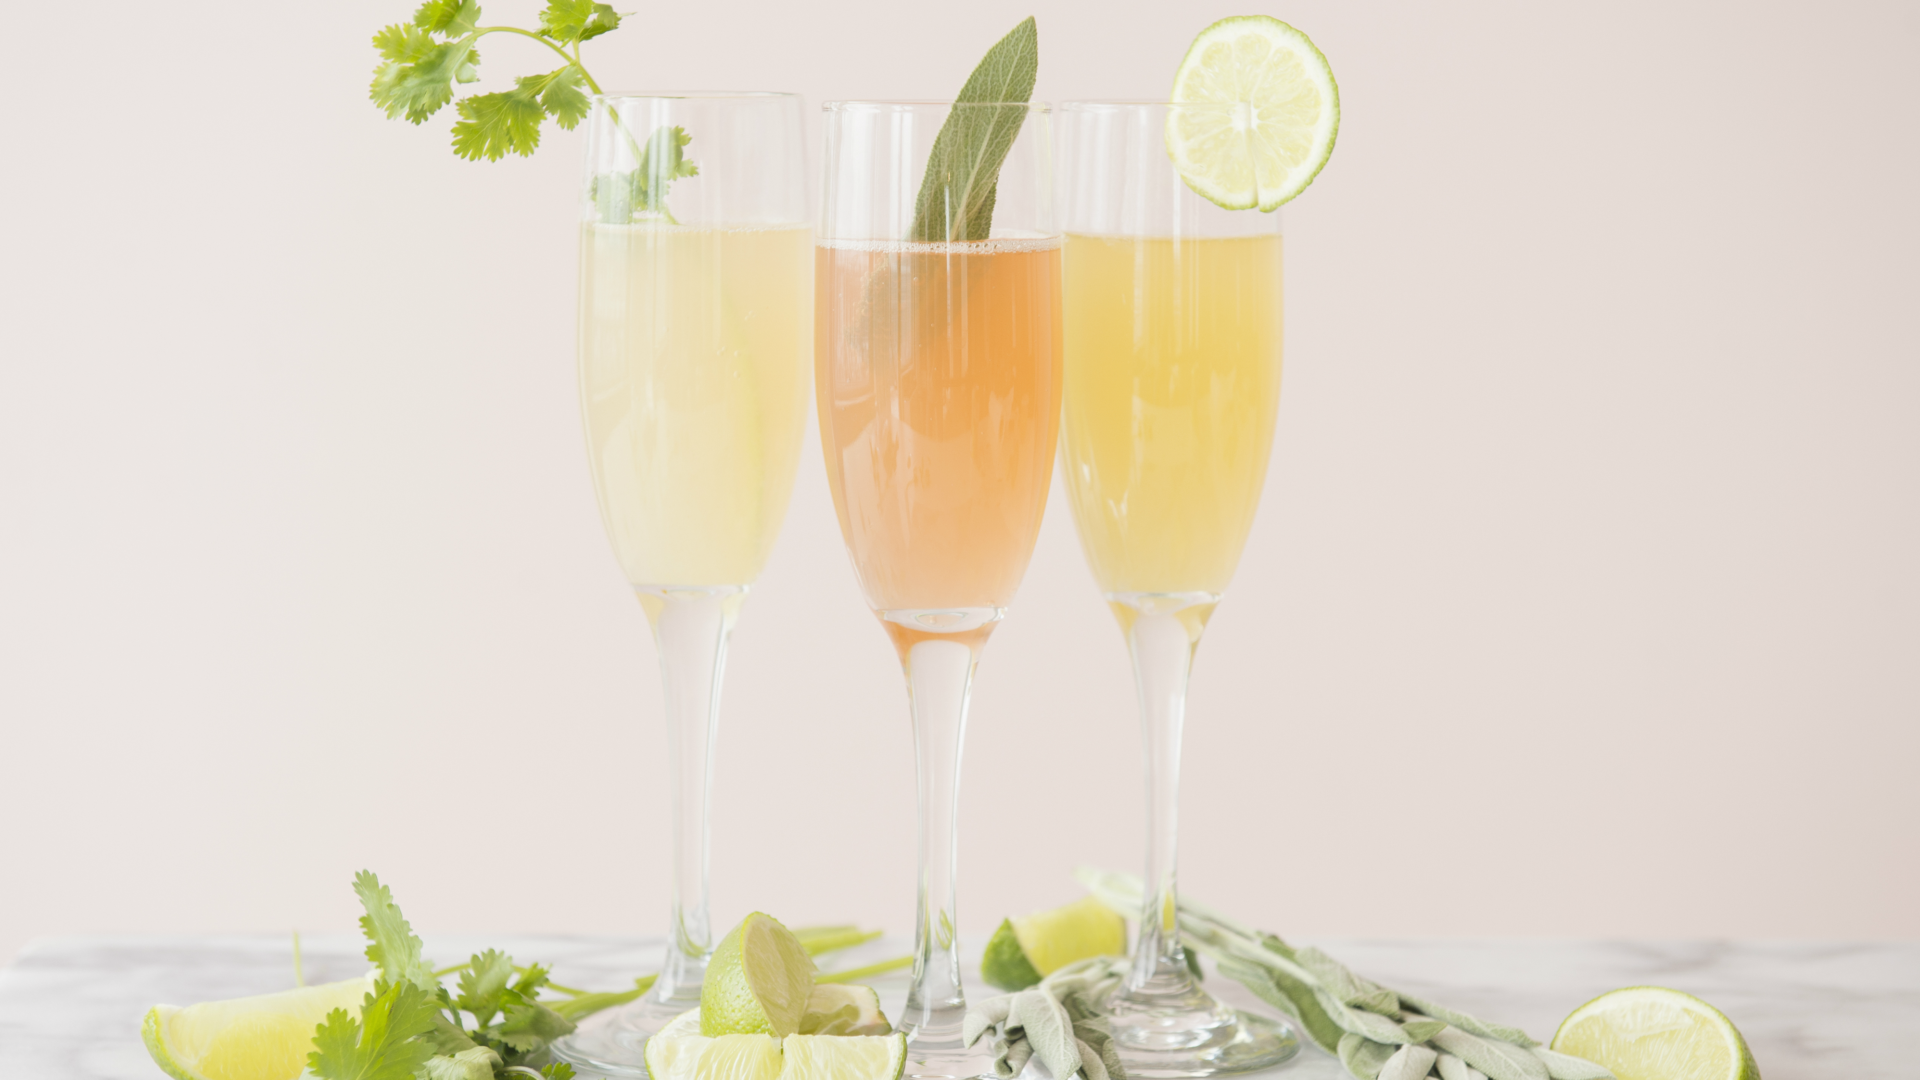 7 Mimosa Recipes That Will Revolutionize the Way You Brunch